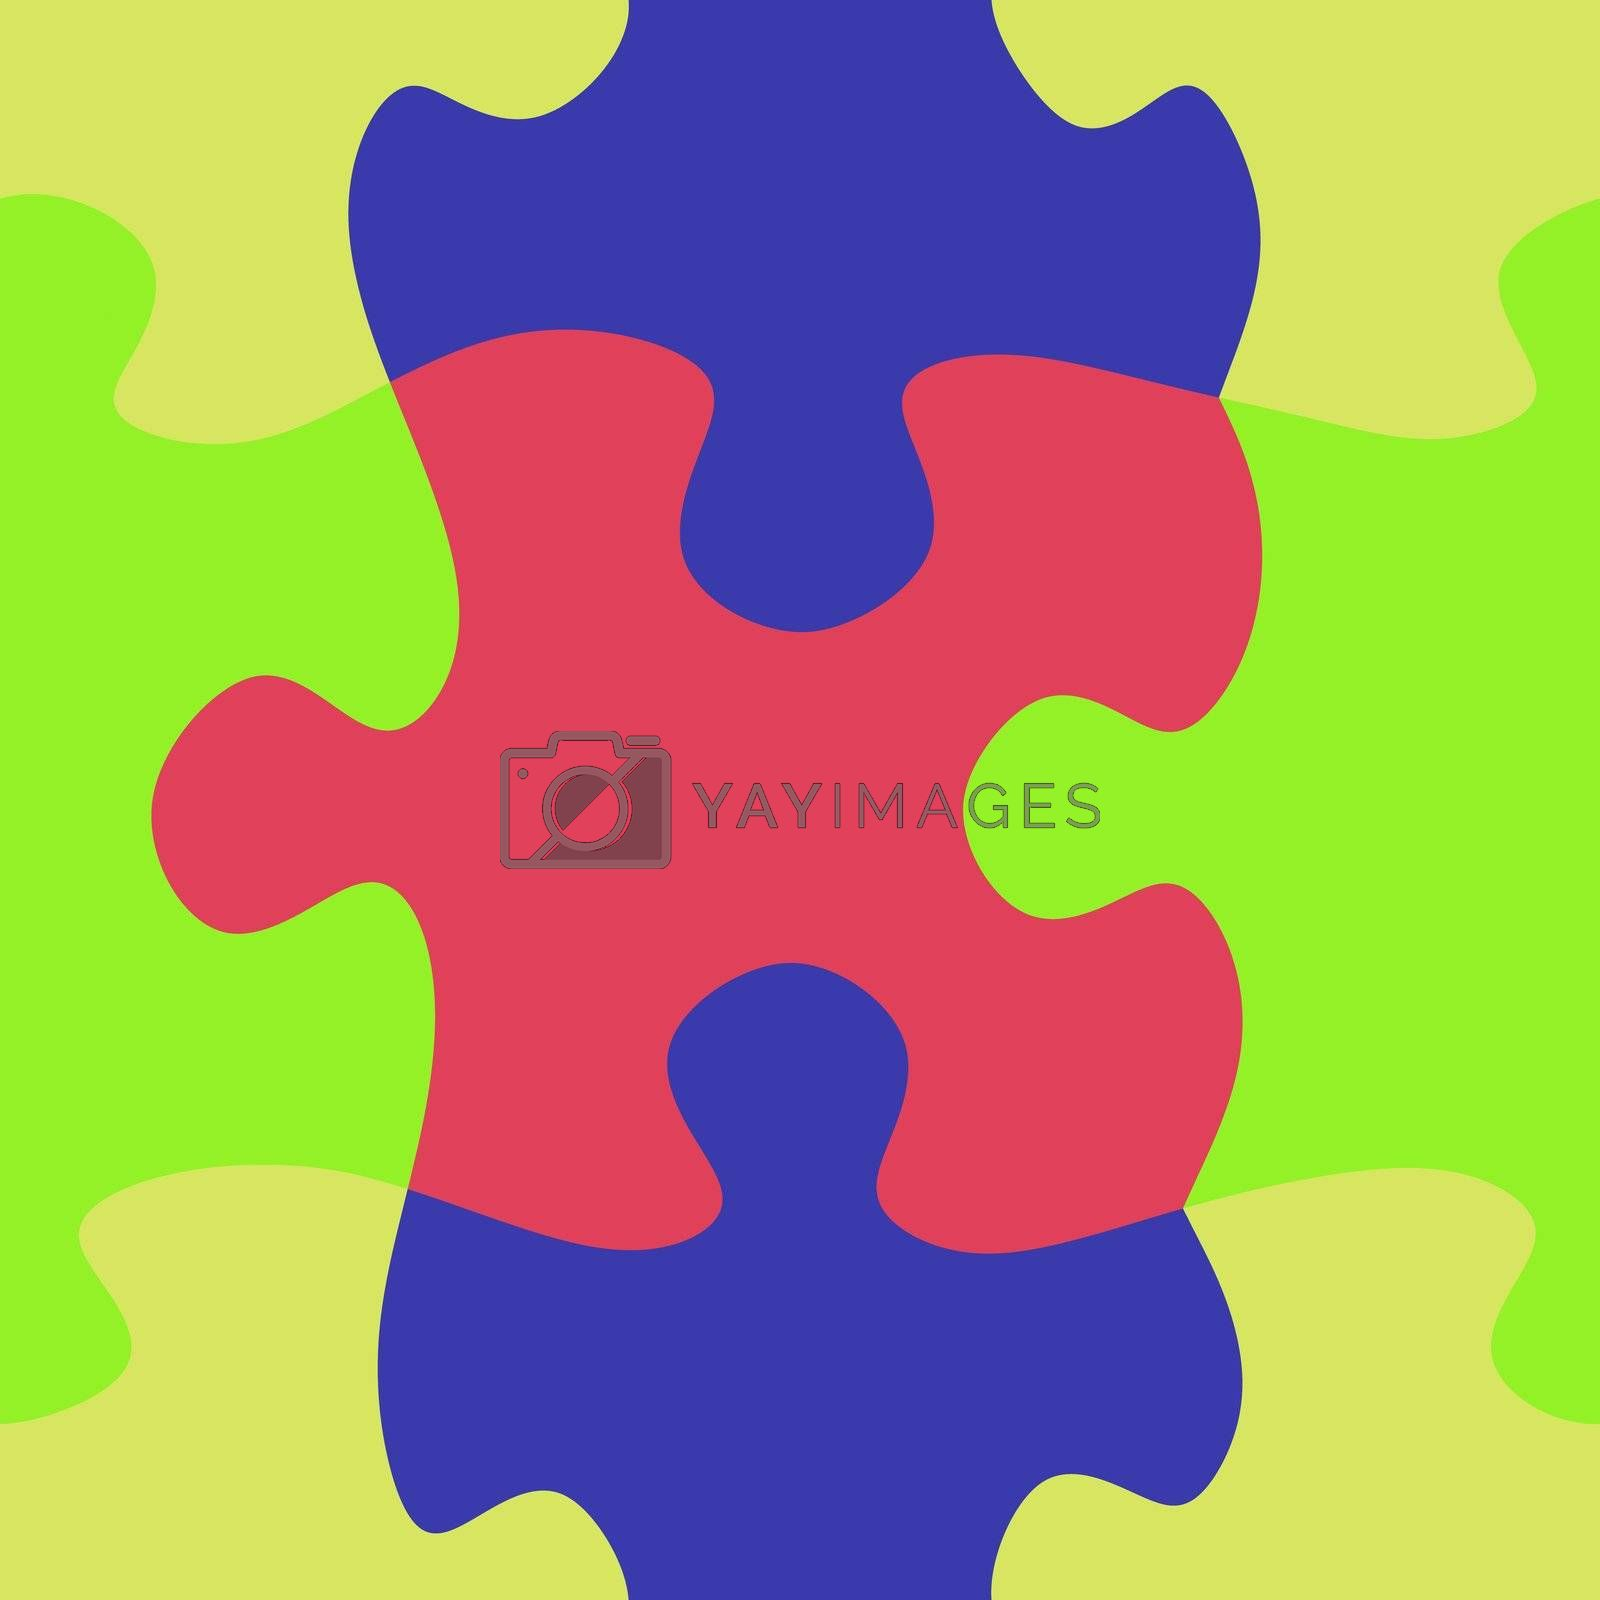 seamless texture of large bright puzzle pieces